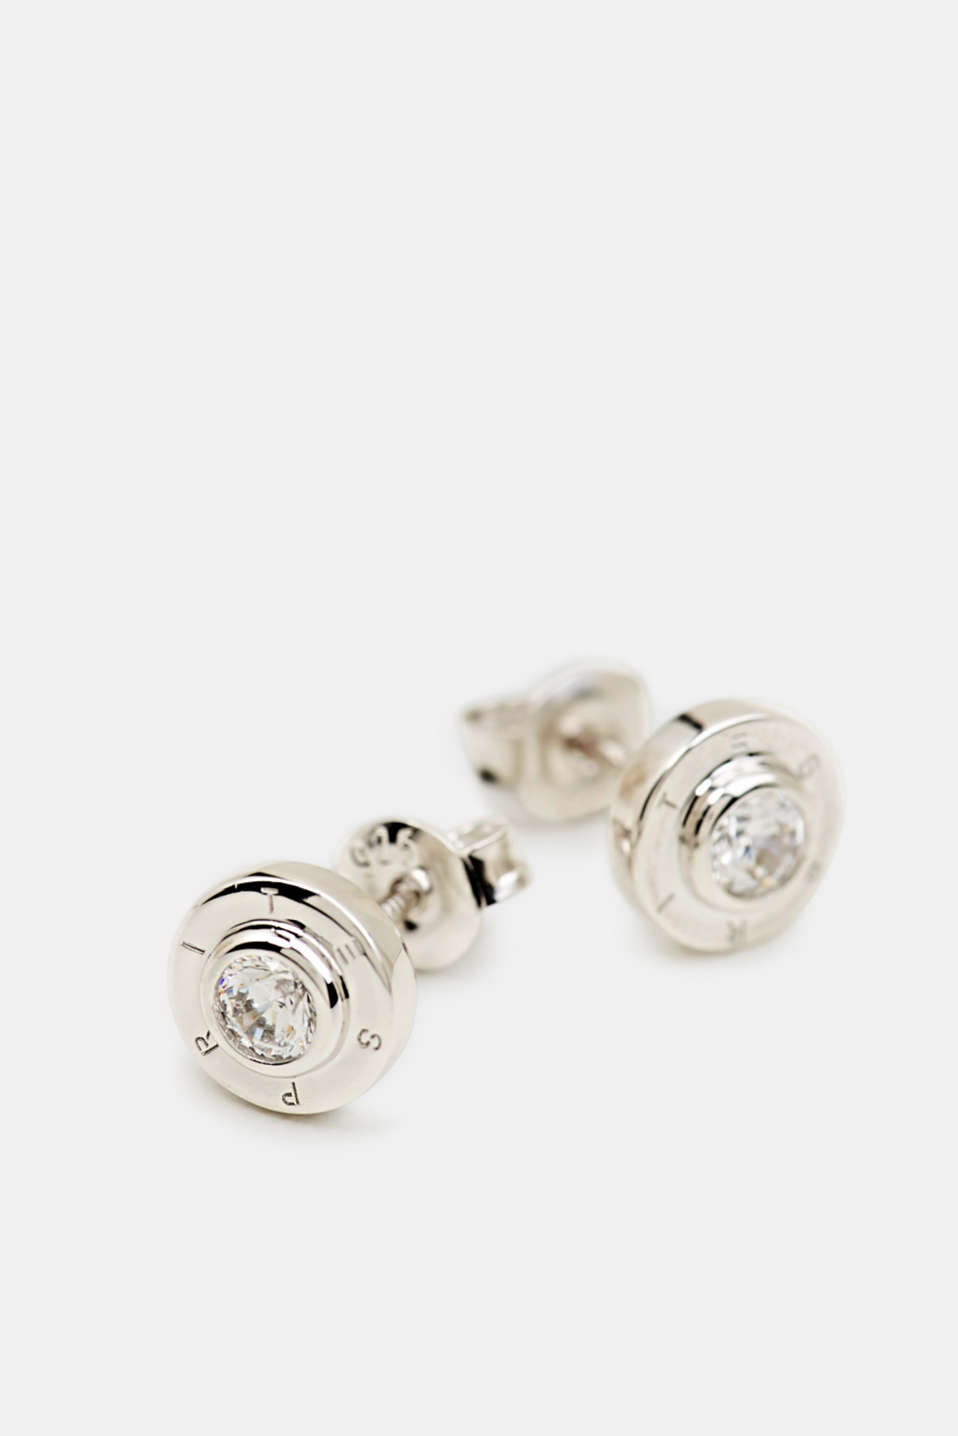 Stud earrings with zirconia, sterling silver, LCSILVER, detail image number 1